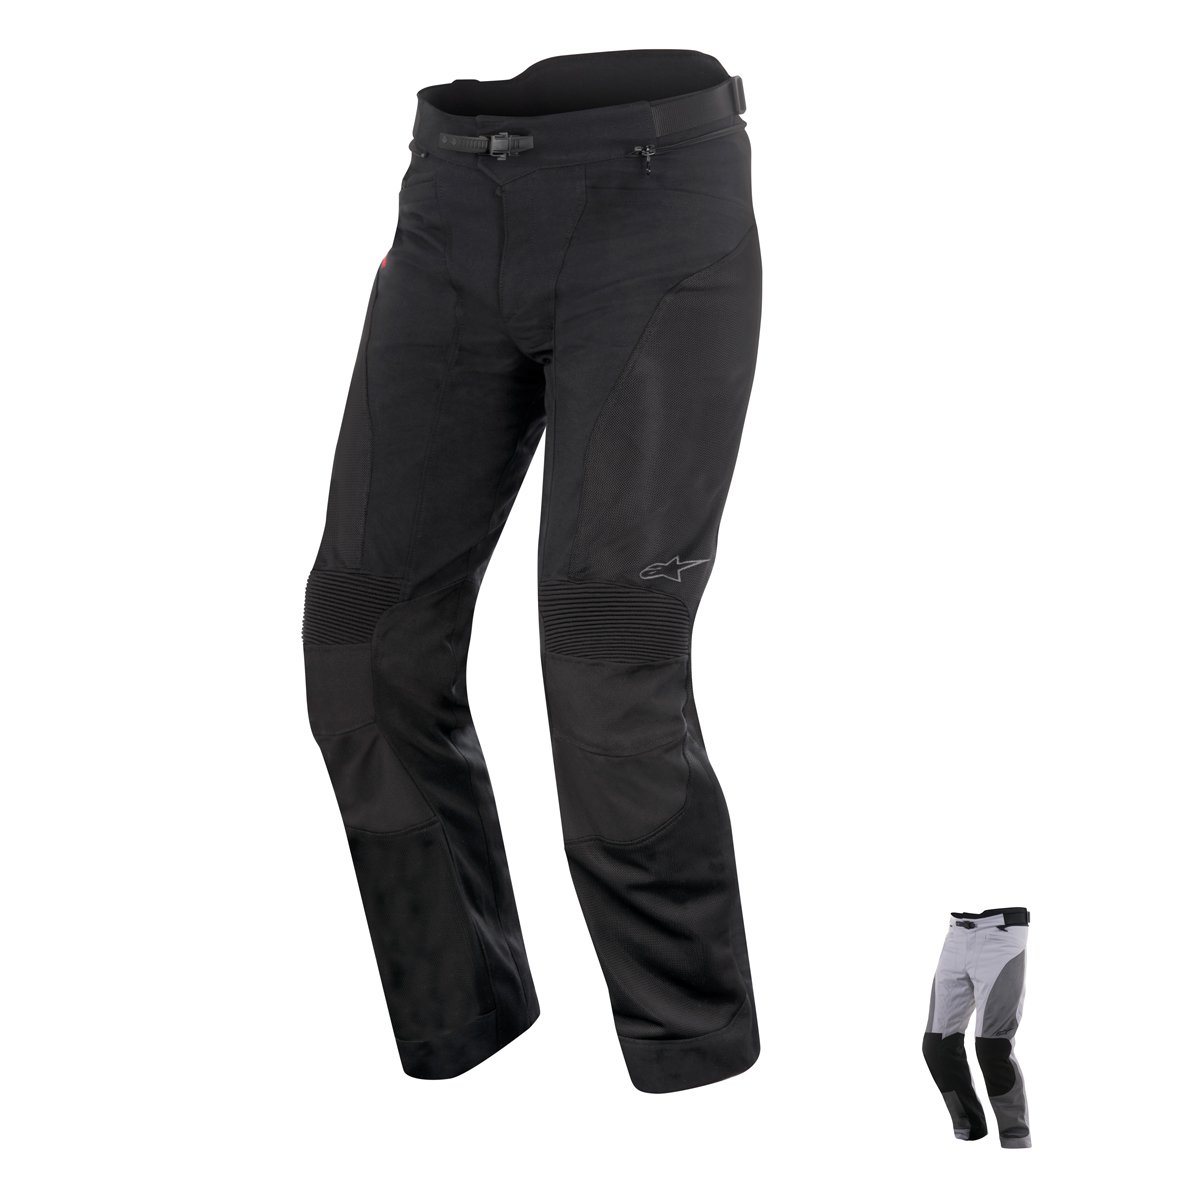 Alpinestars Sonoran Men's Sports Bike Motorcycle Pants - Black / Size 3X-Large